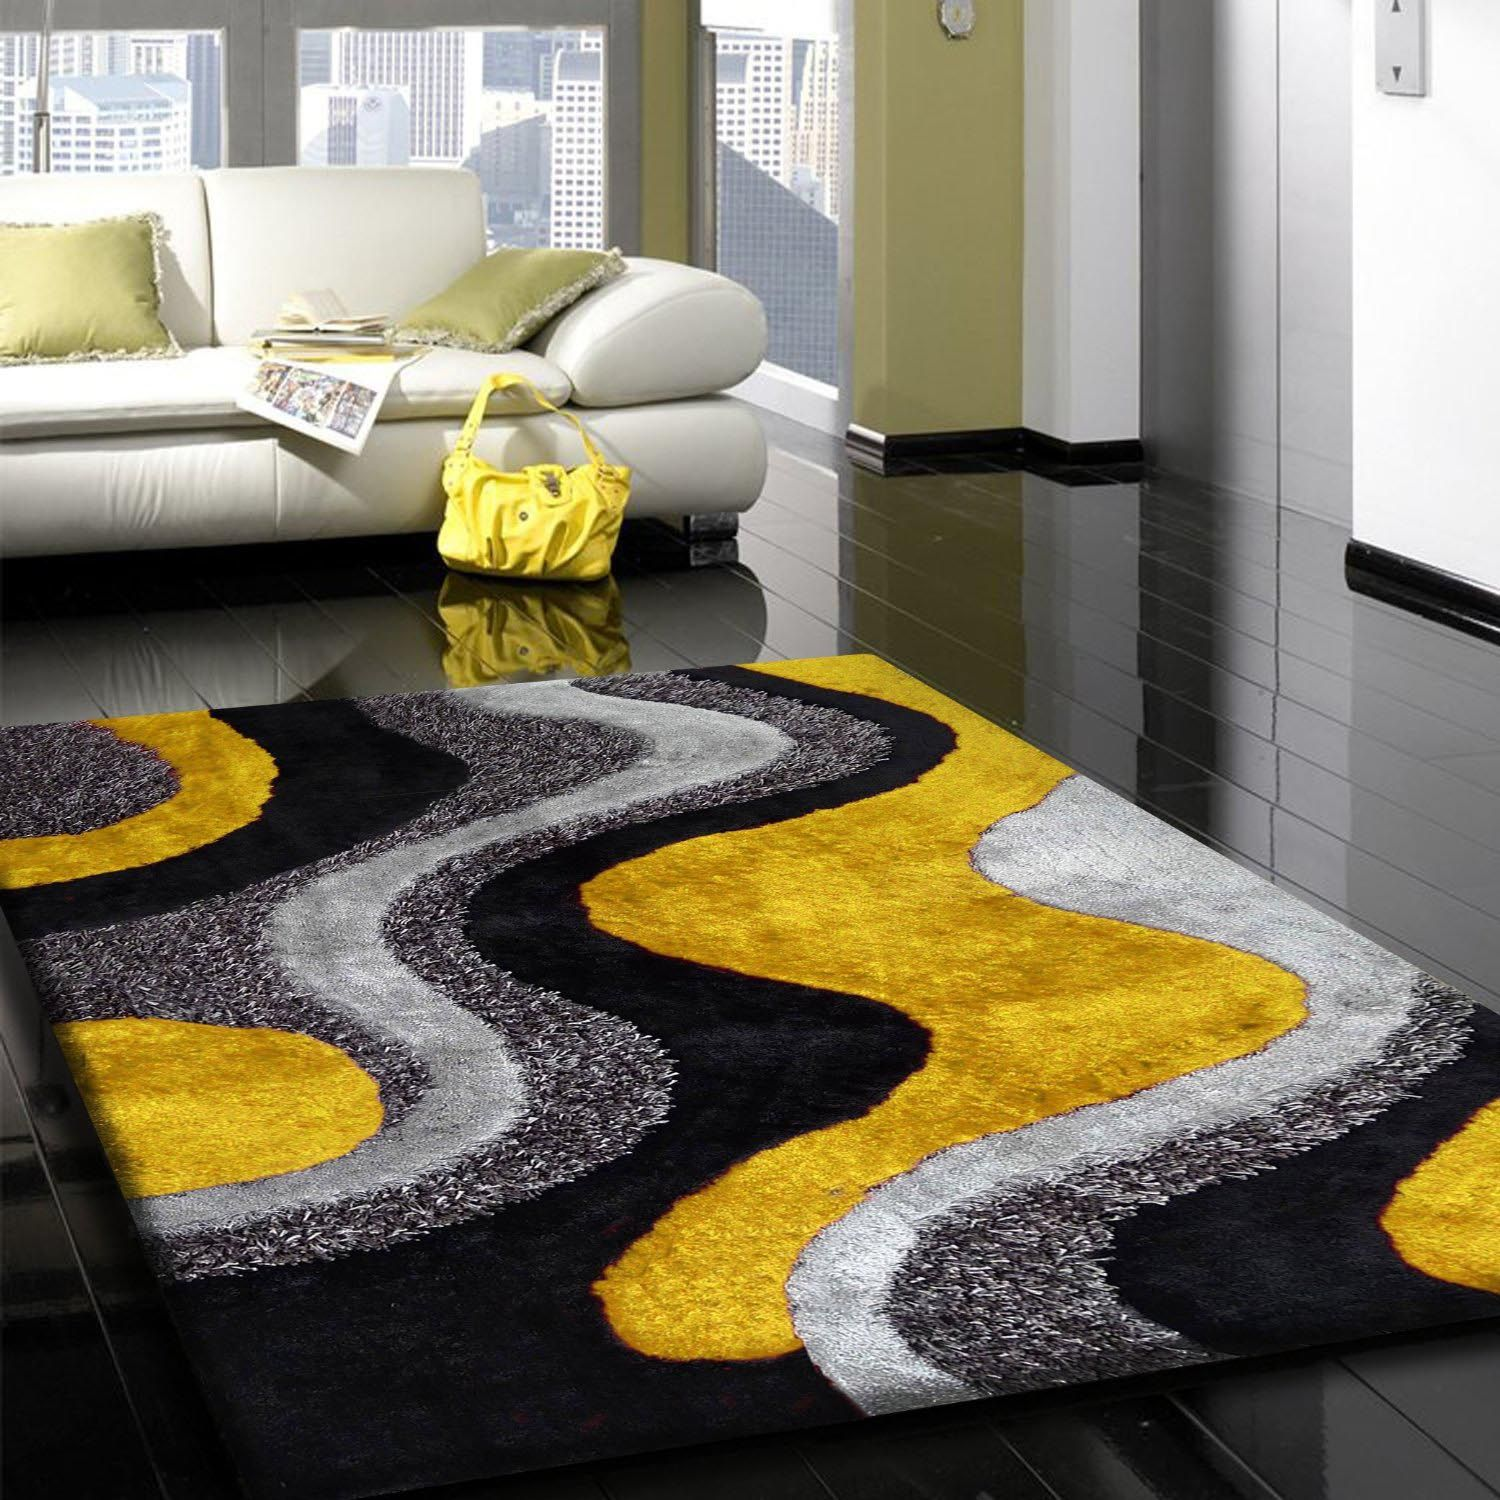 Gray And Yellow Rug With Images Yellow Carpet Rugs In Living